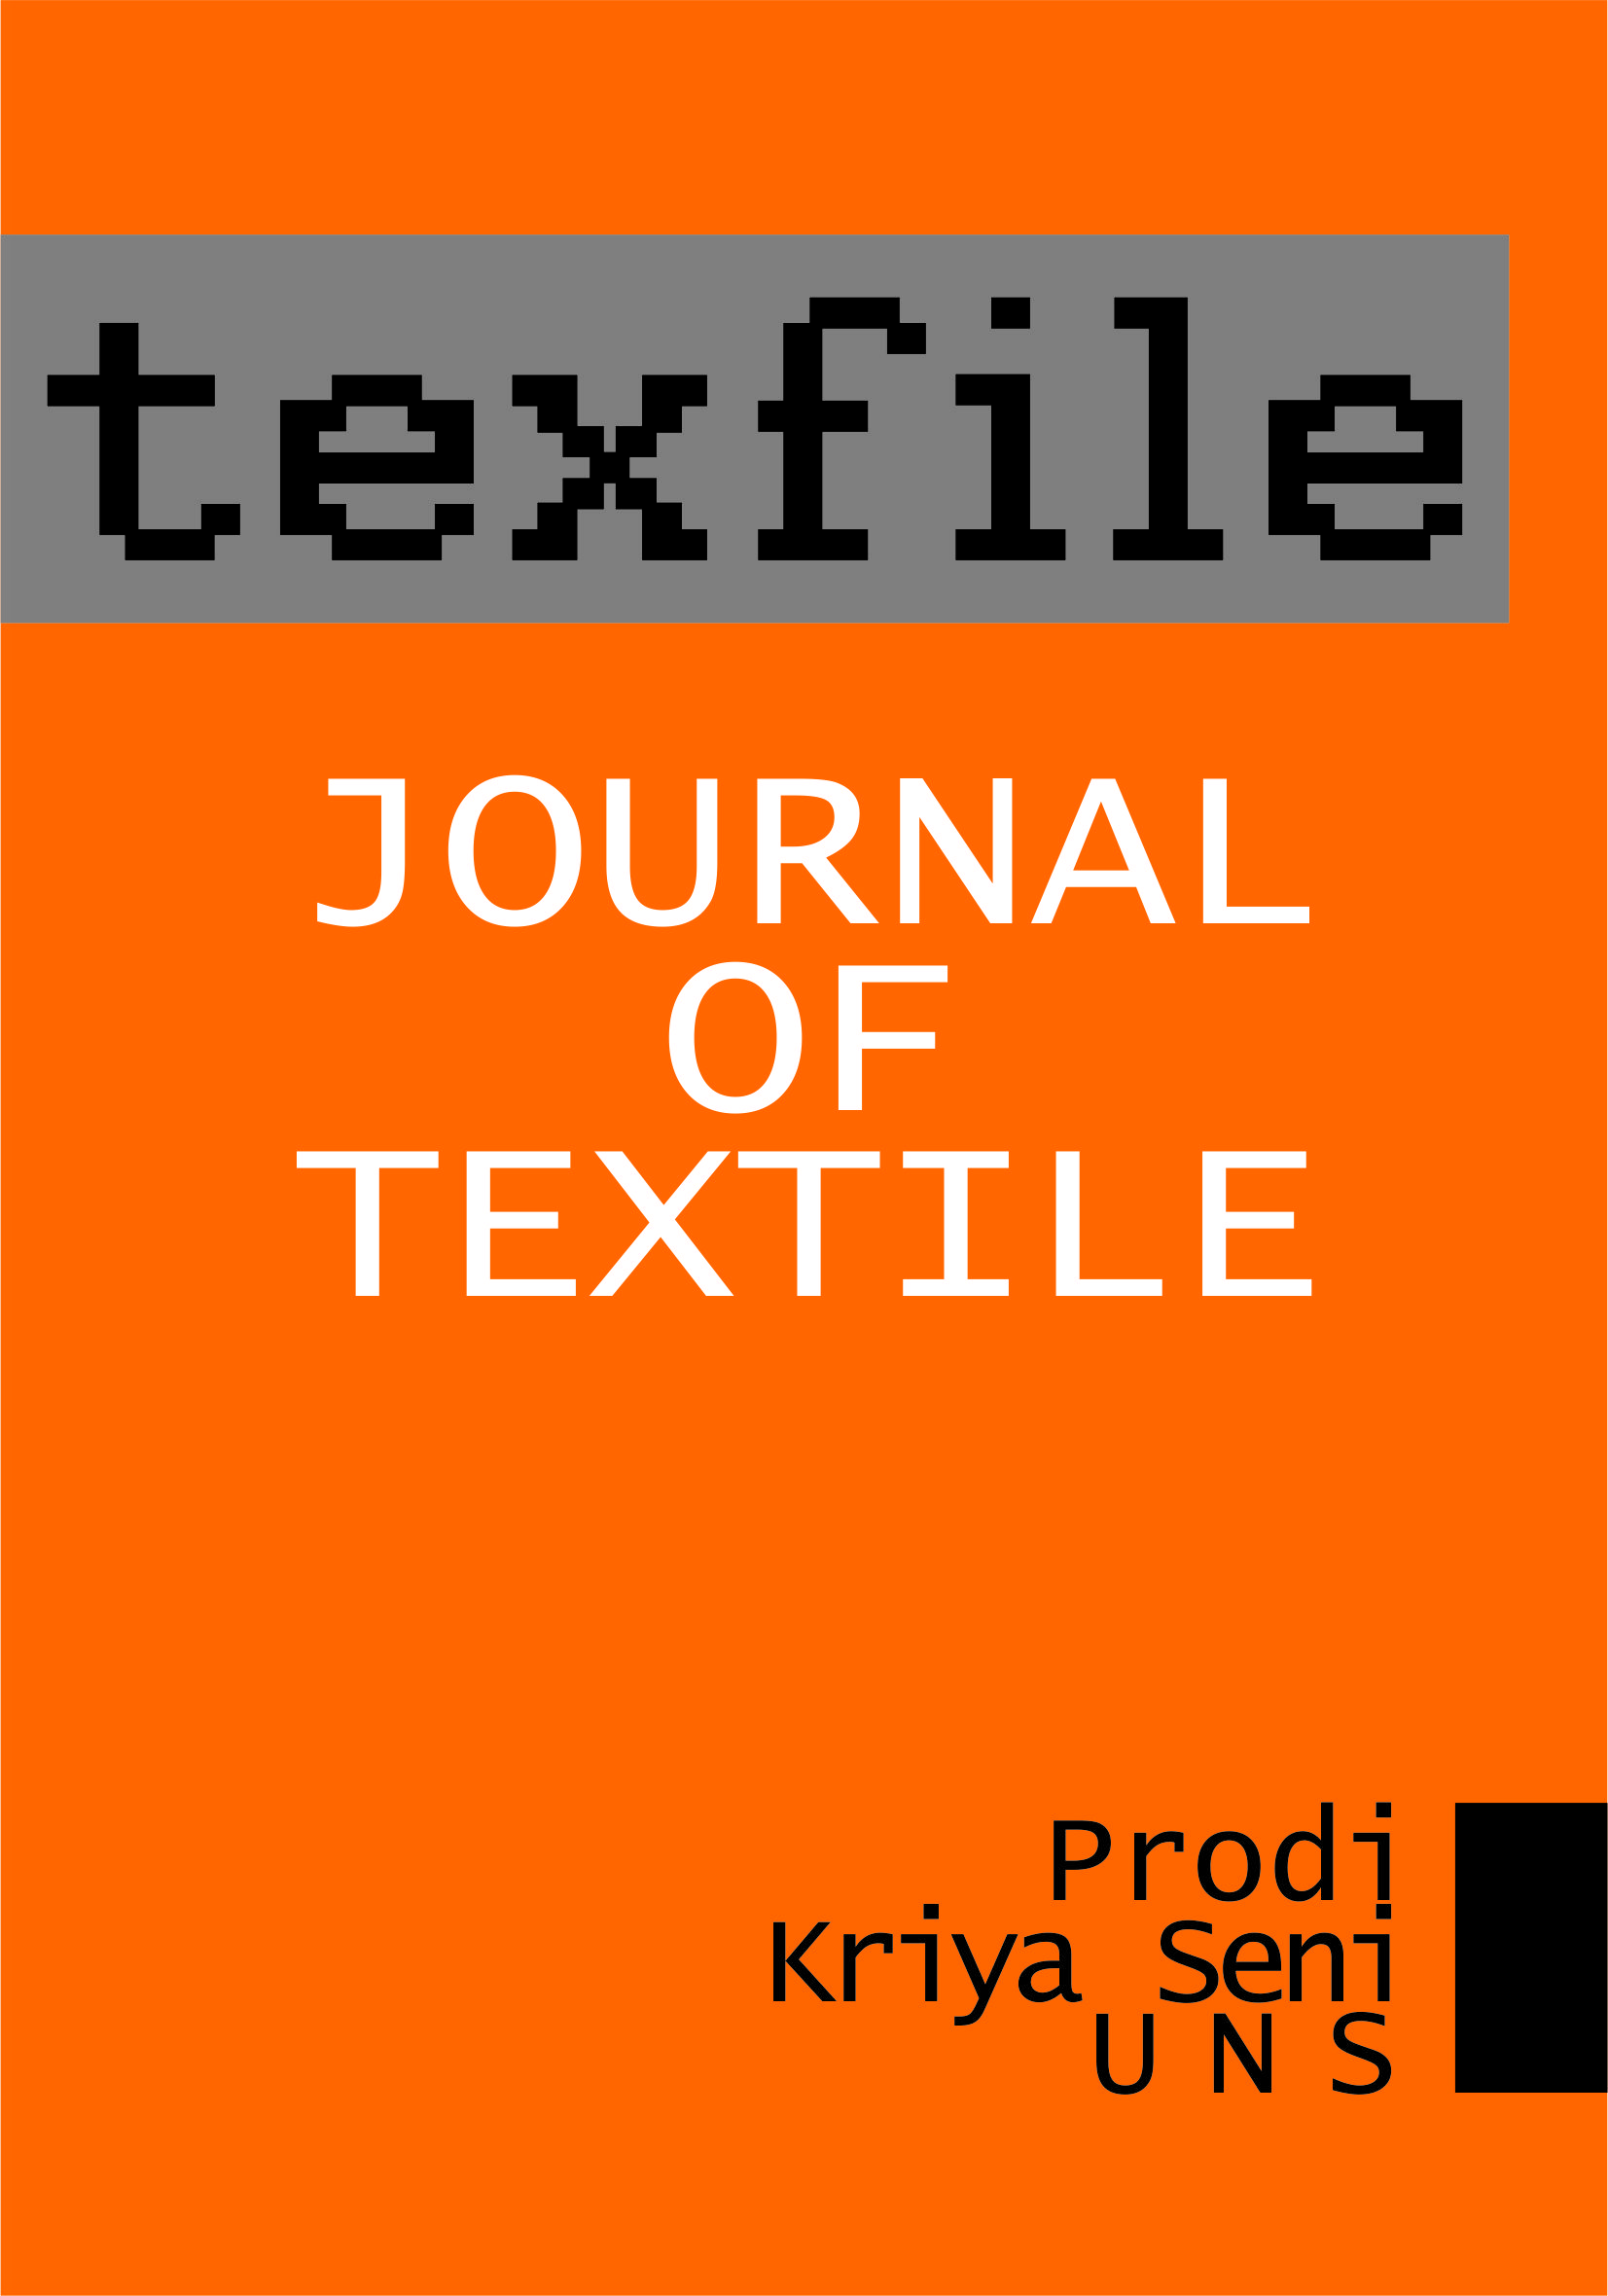 TEXFILE Journal of Textile